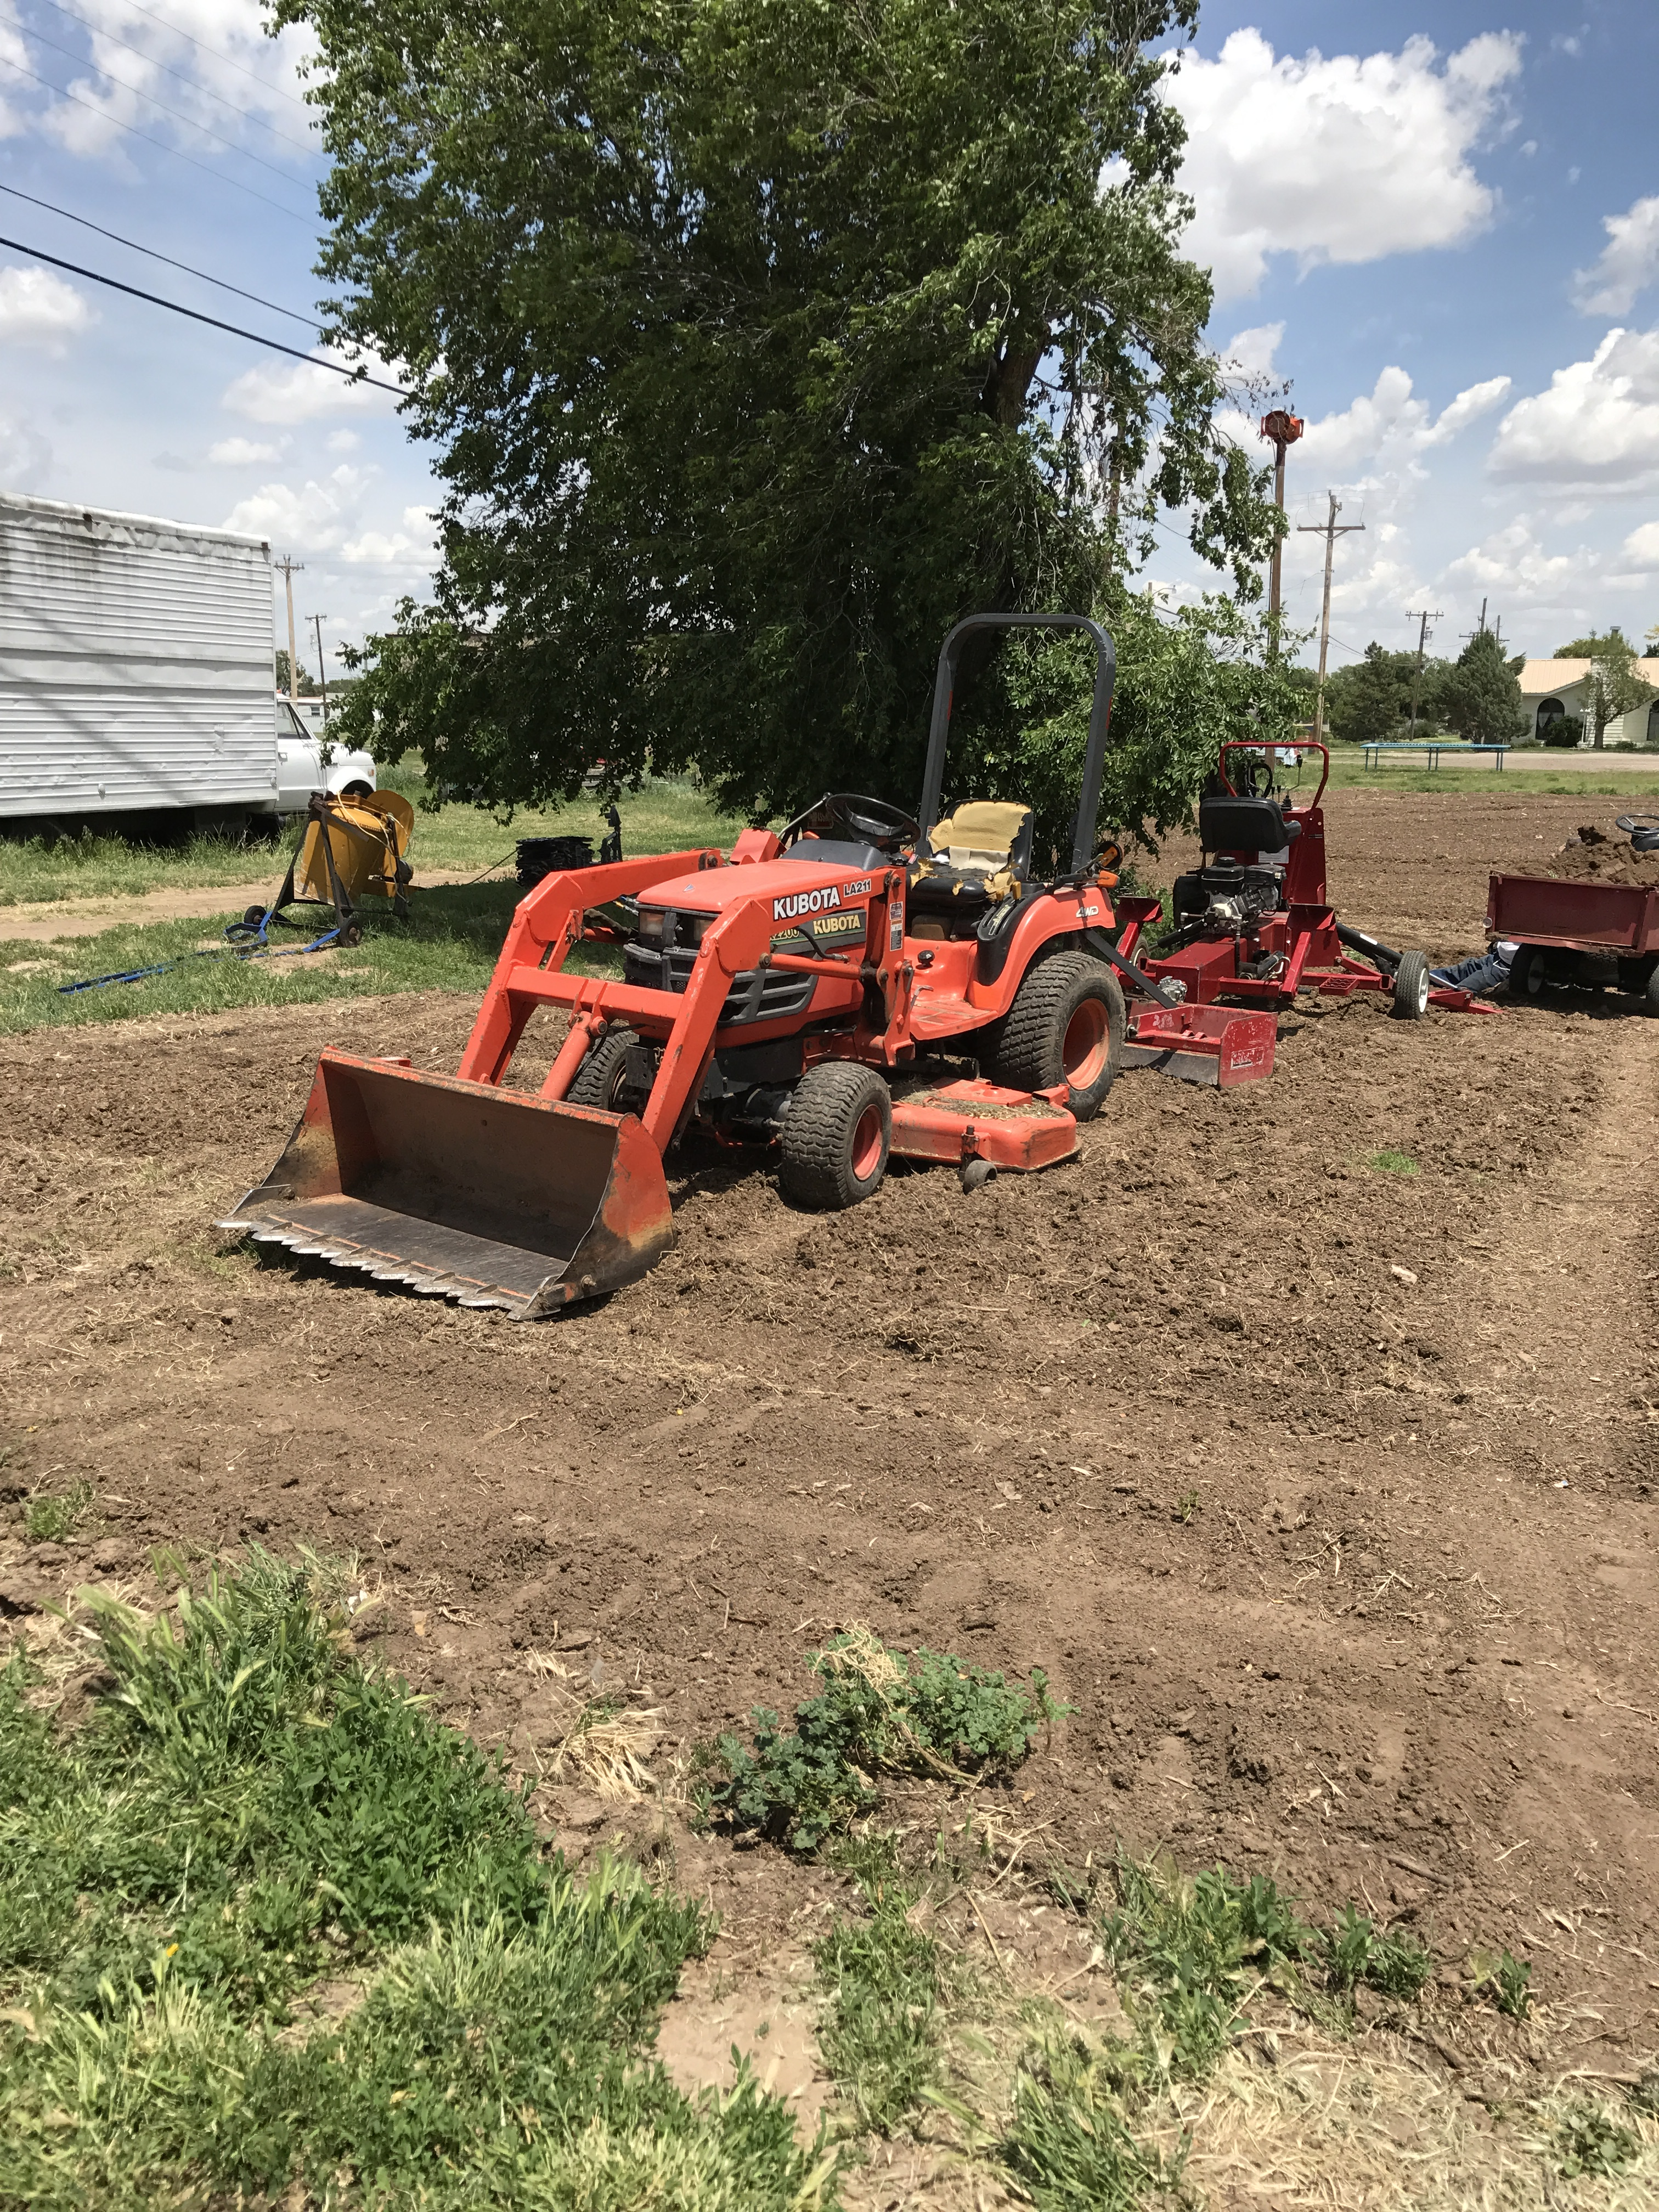 Tractor Knowledge (small farm forum at permies)